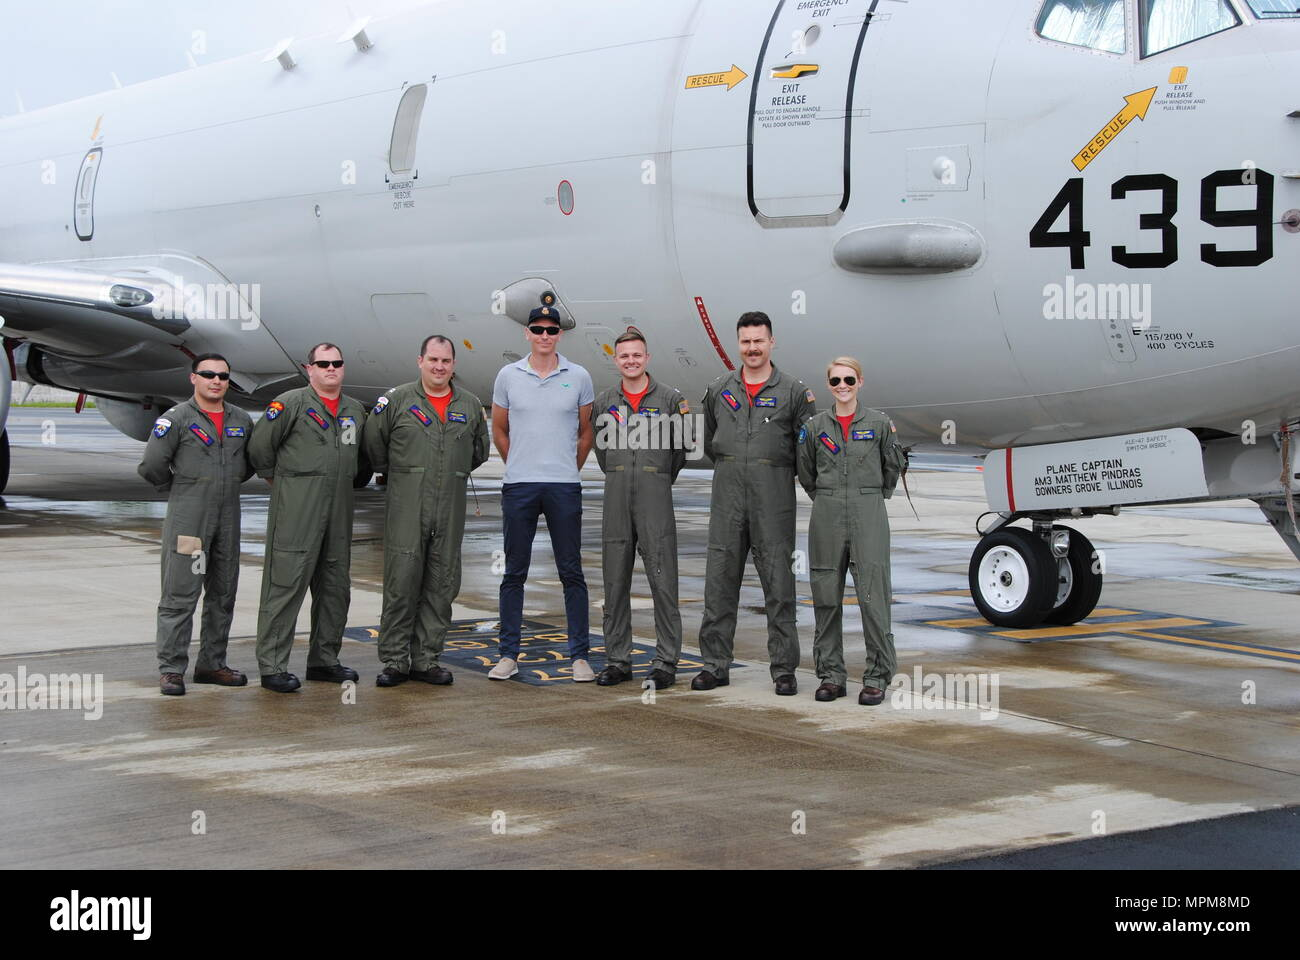 KOROR, Palau (March 11, 2017) The Red Lancers of Patrol Squadron Ten (VP-10) pose in front of the P-8A with their Maritime Surveillance Coordinator after arriving on detachment in Palau. The Red Lancers flew to Palau to participate in Rai Balang, a Forum Fisheries Agency operation that conducted surveillance missions to deter illegal fishing in their national waters and Exclusive Economic Zone (EEZ).  (U.S. Navy photo by Mass Communications Specialist 3rd Class Nathan Morin/Released) - Stock Image